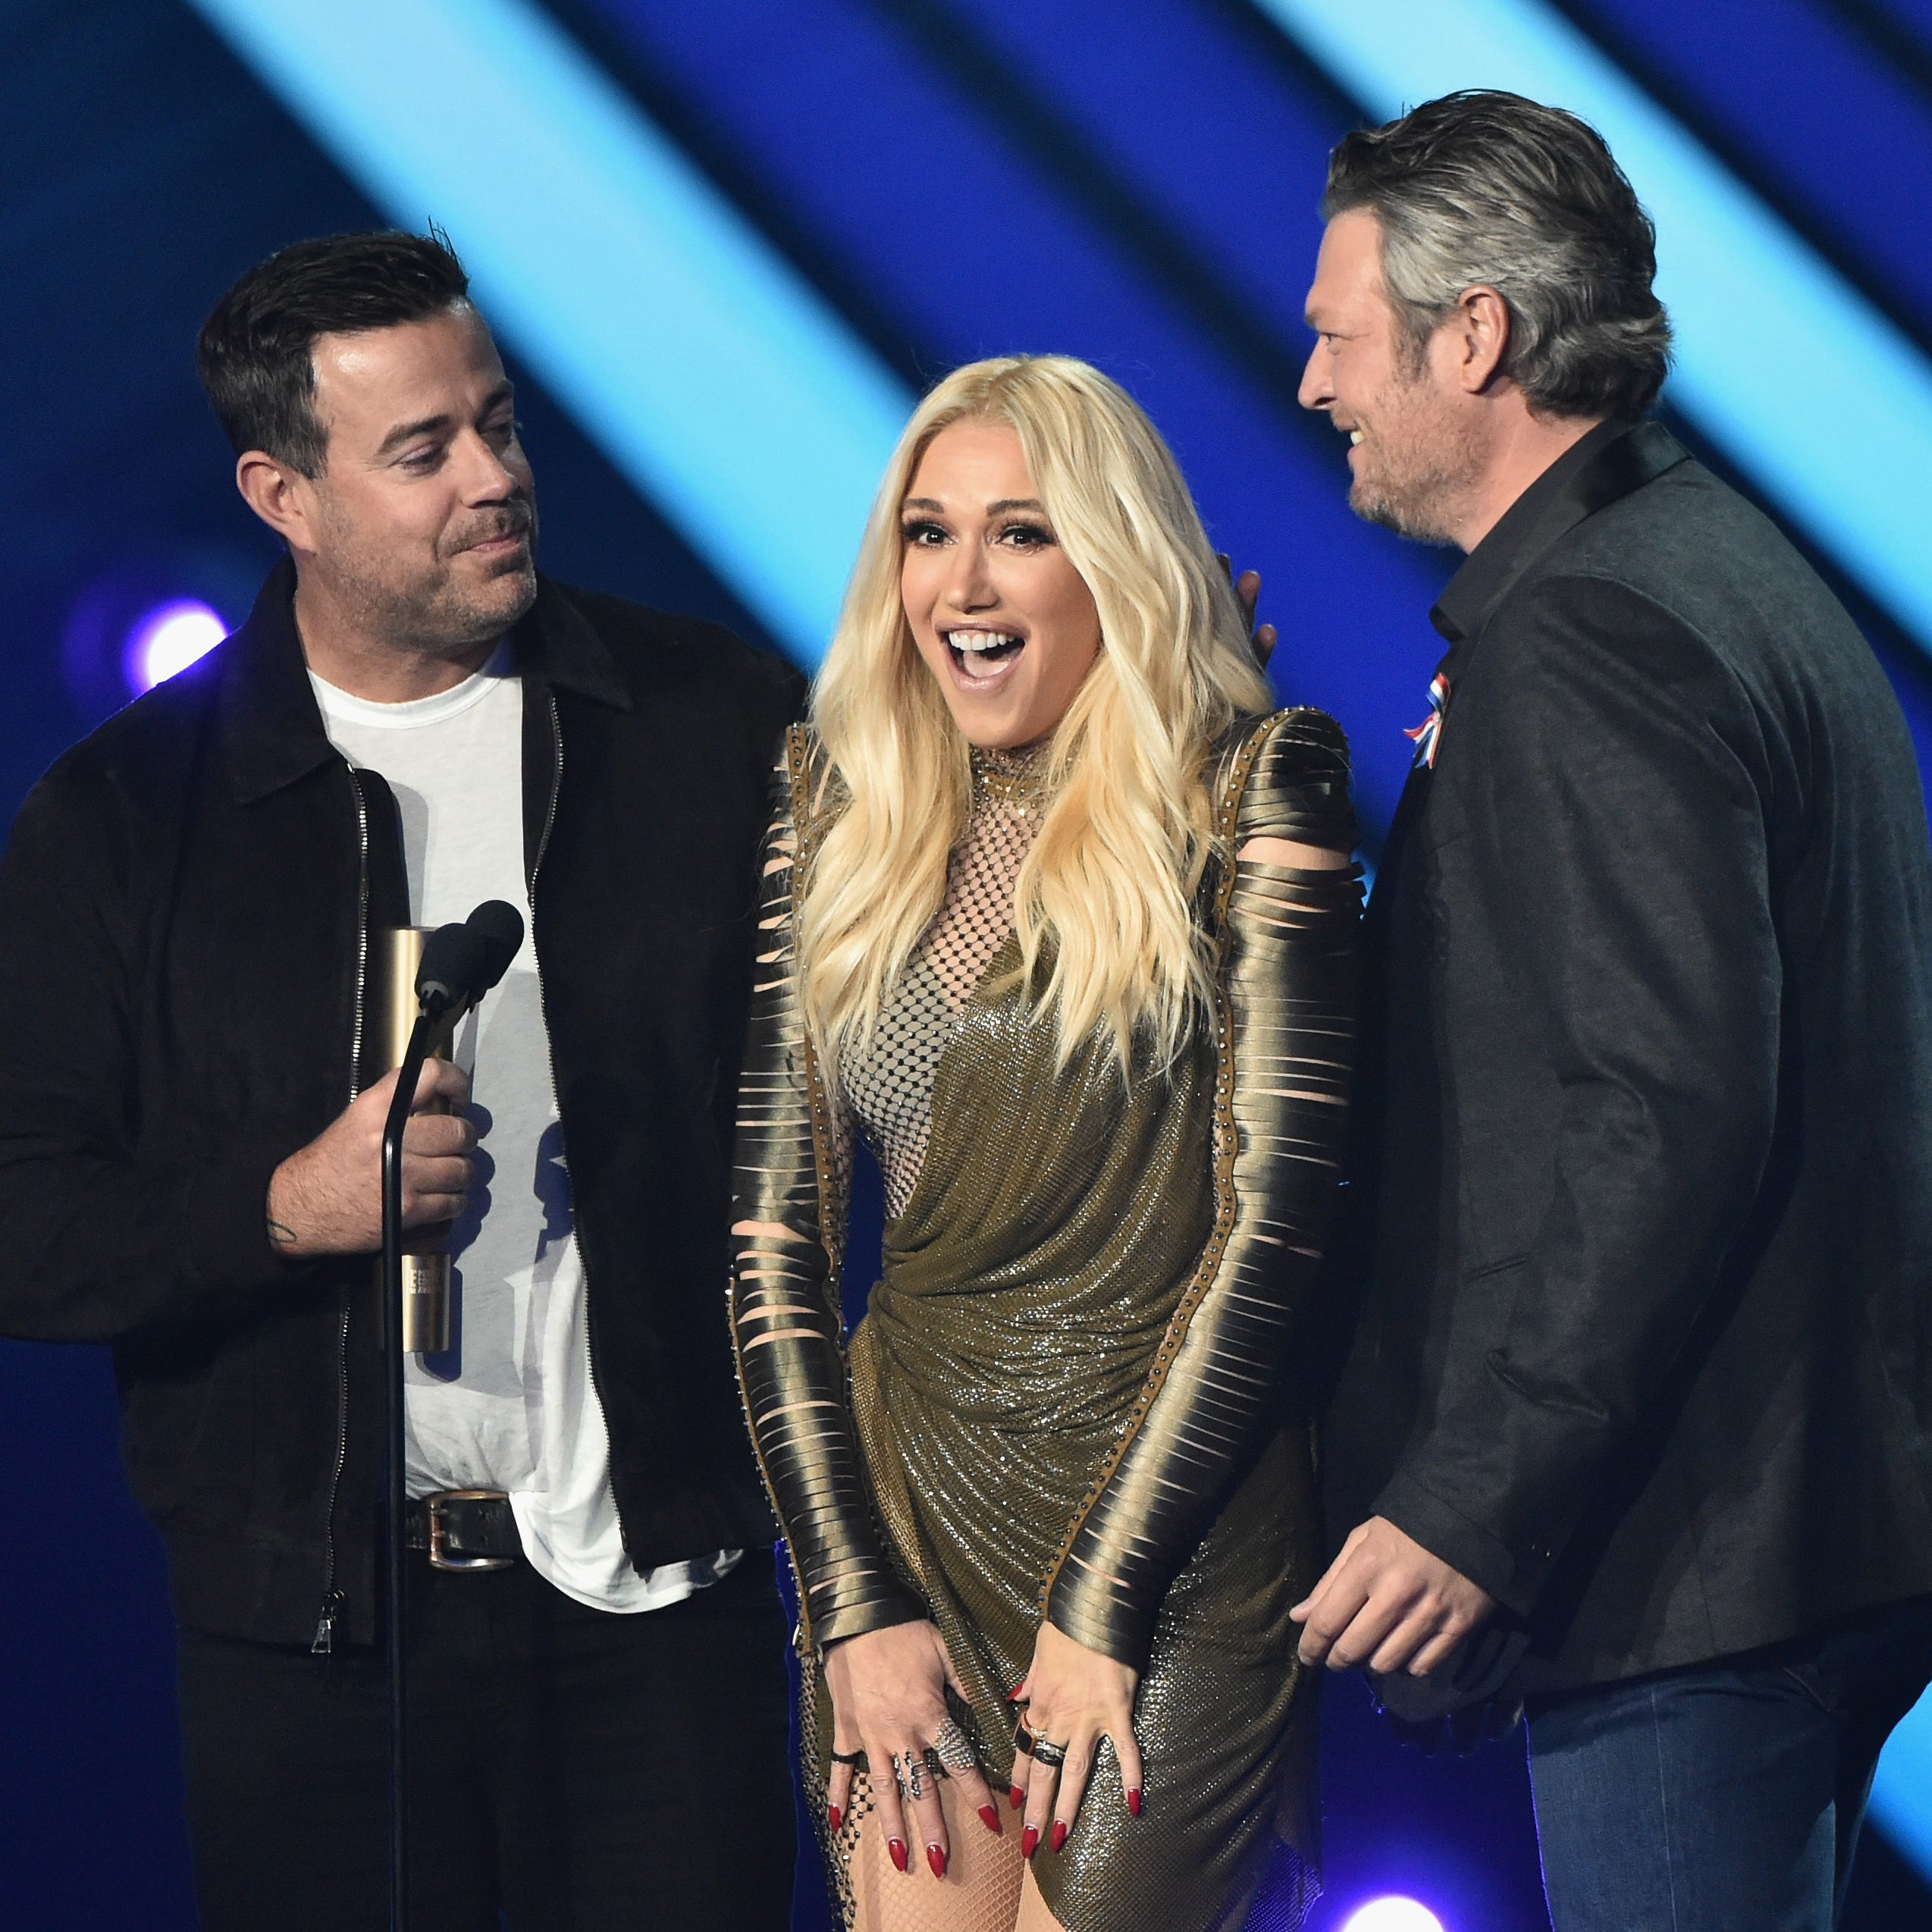 2018 E! PEOPLE'S CHOICE AWARDS -- Pictured: (l-r) Carson Daly, Gwen Stefani and Blake Shelton on stage during the 2018 E! People's Choice Awards held at the Barker Hangar on November 11, 2018 -- (Photo by: Alberto Rodriguez/E! Entertainment)